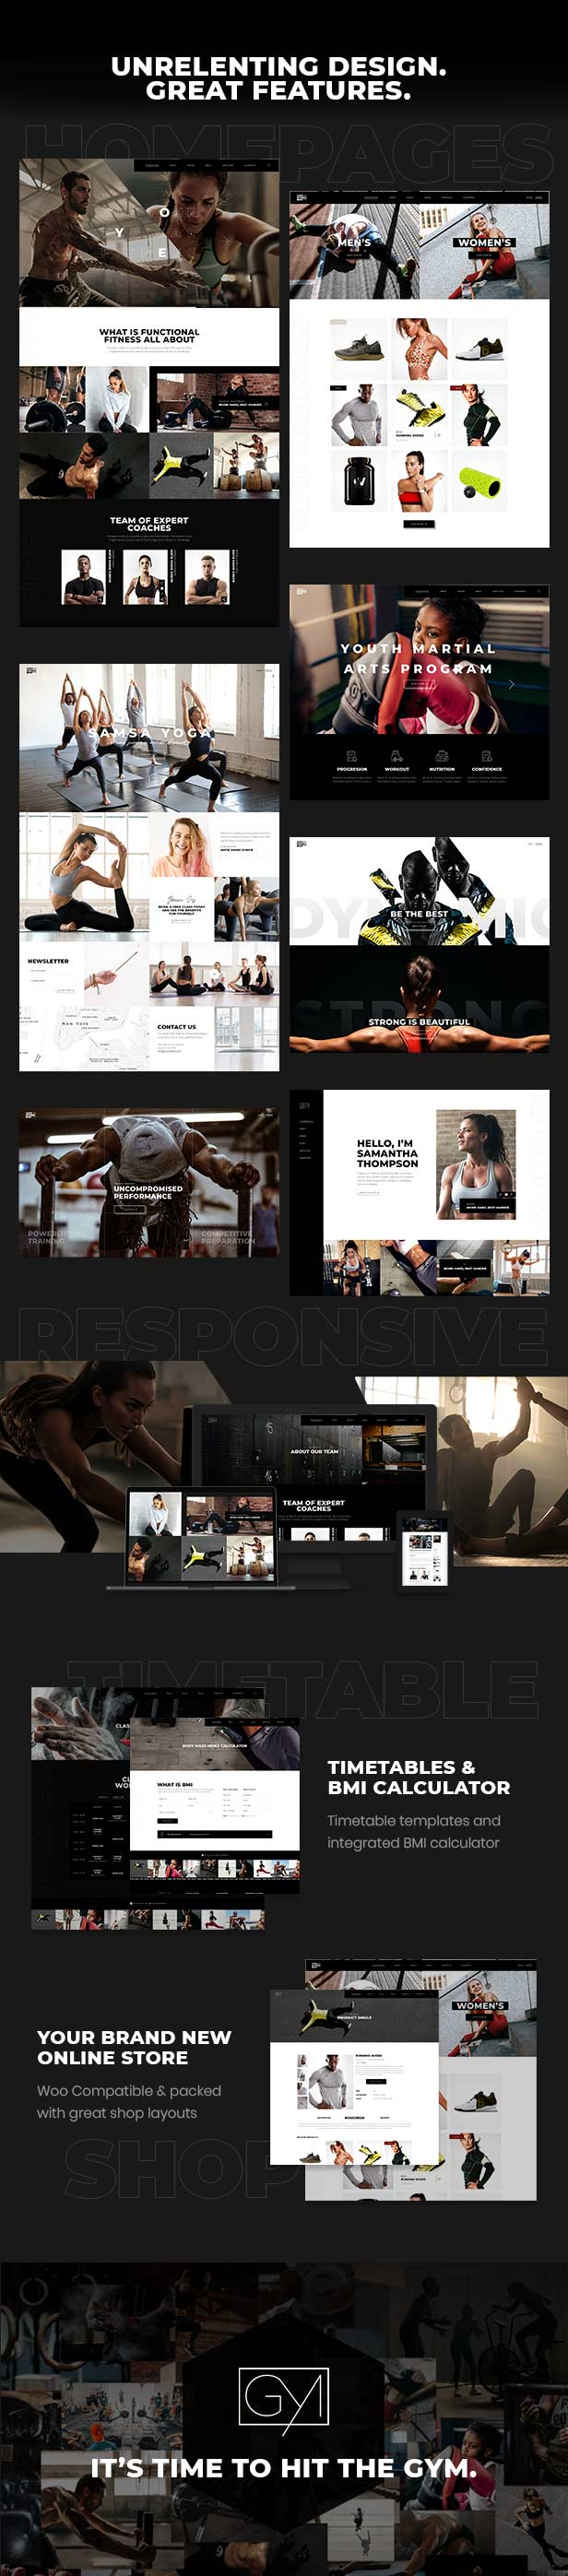 Powerlift - Fitness and Gym Theme - 1